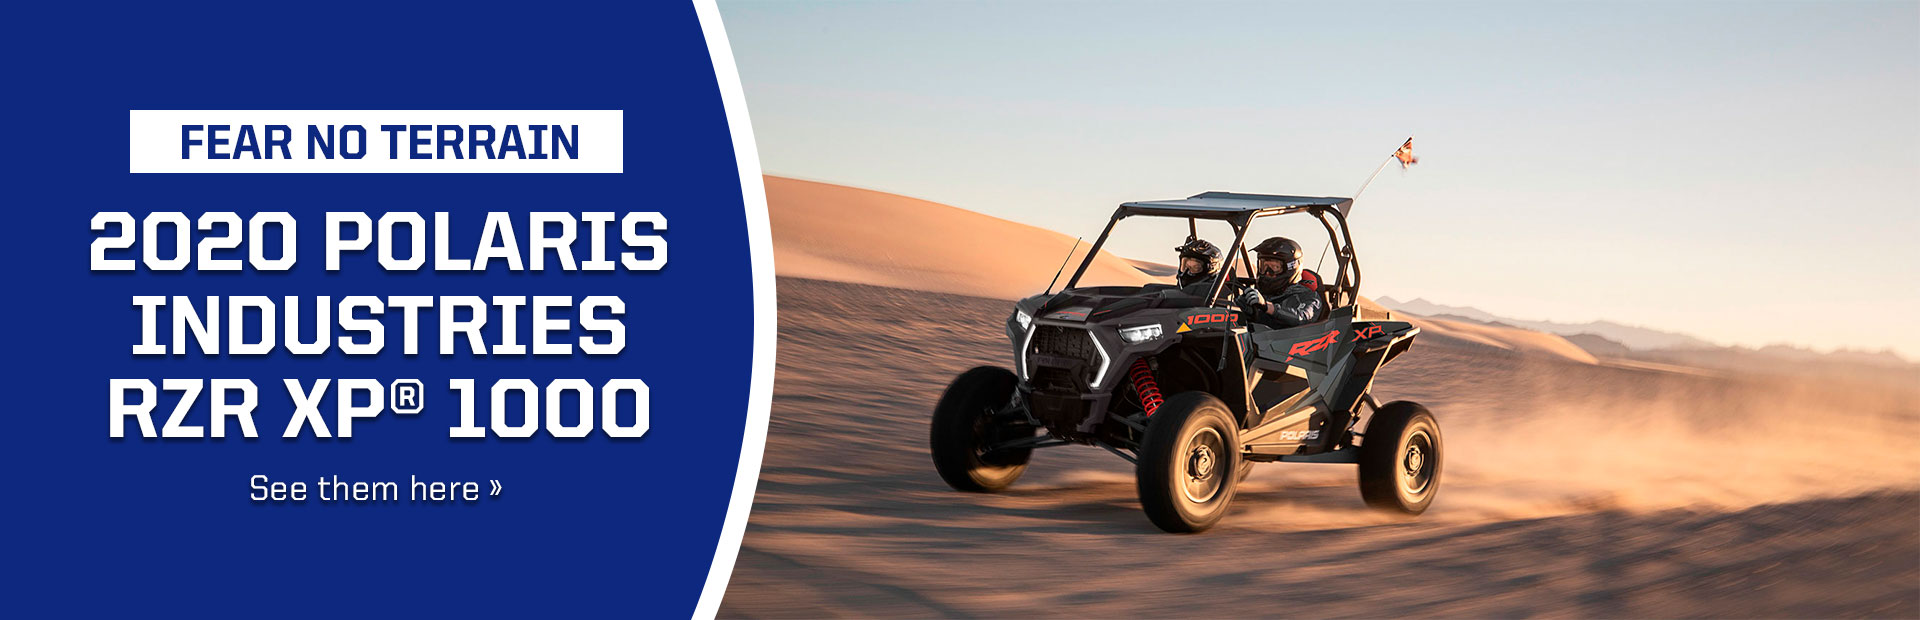 Click now to see our 2020 Polaris Industries RZR XP® 1000 inventory!